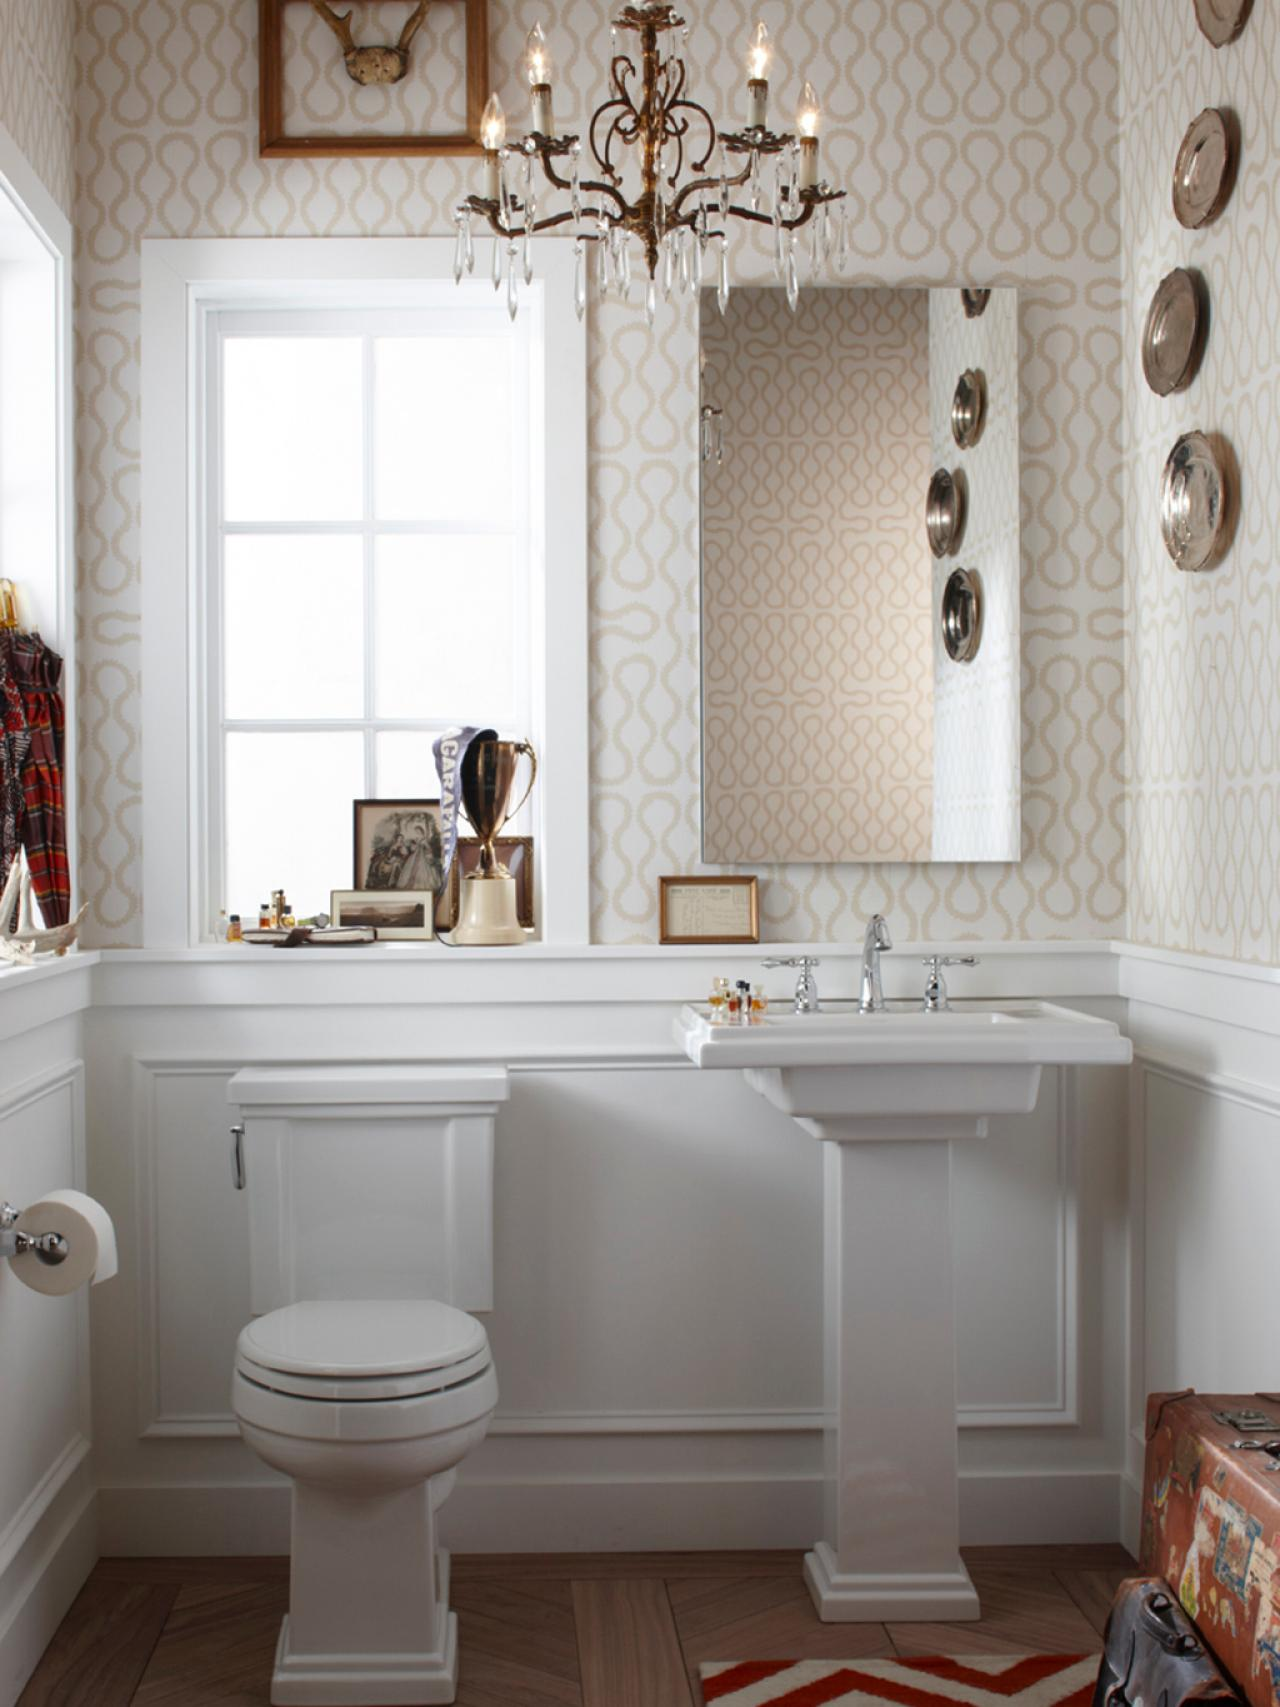 Half bathroom or powder room hgtv - Bathroom remodel ideas with wainscoting ...